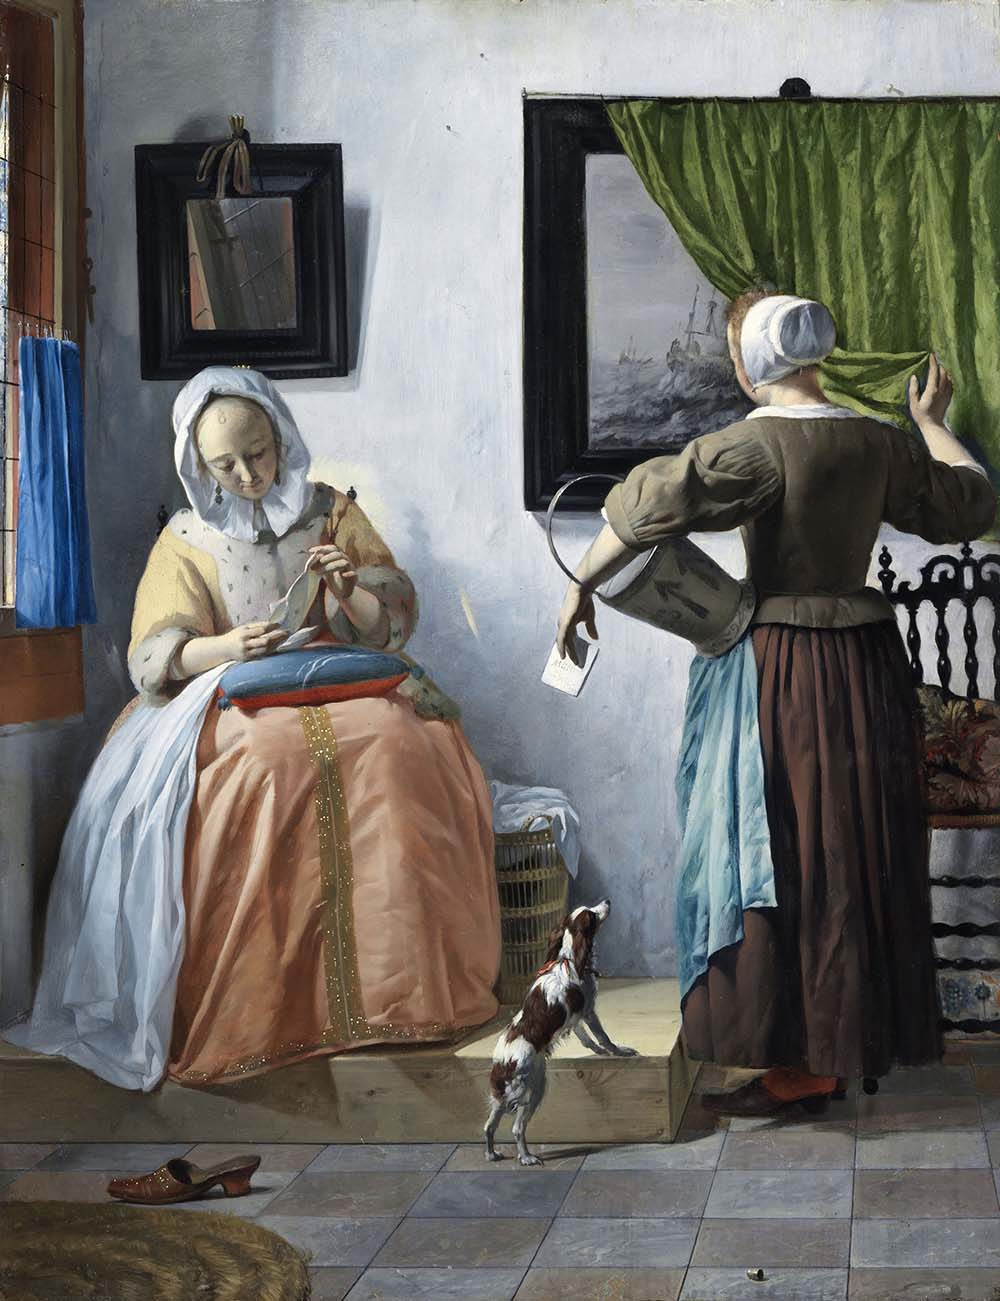 Gabriel Metsu, A woman reading a letter , 1664-1666. Oil on panel. 52.5 x 40.2 cm, Dublin, National Gallery of Ireland, Sir Alfred and Lady Beit, 1987 (Beit Collection) © Dublin, National Gallery of Ireland